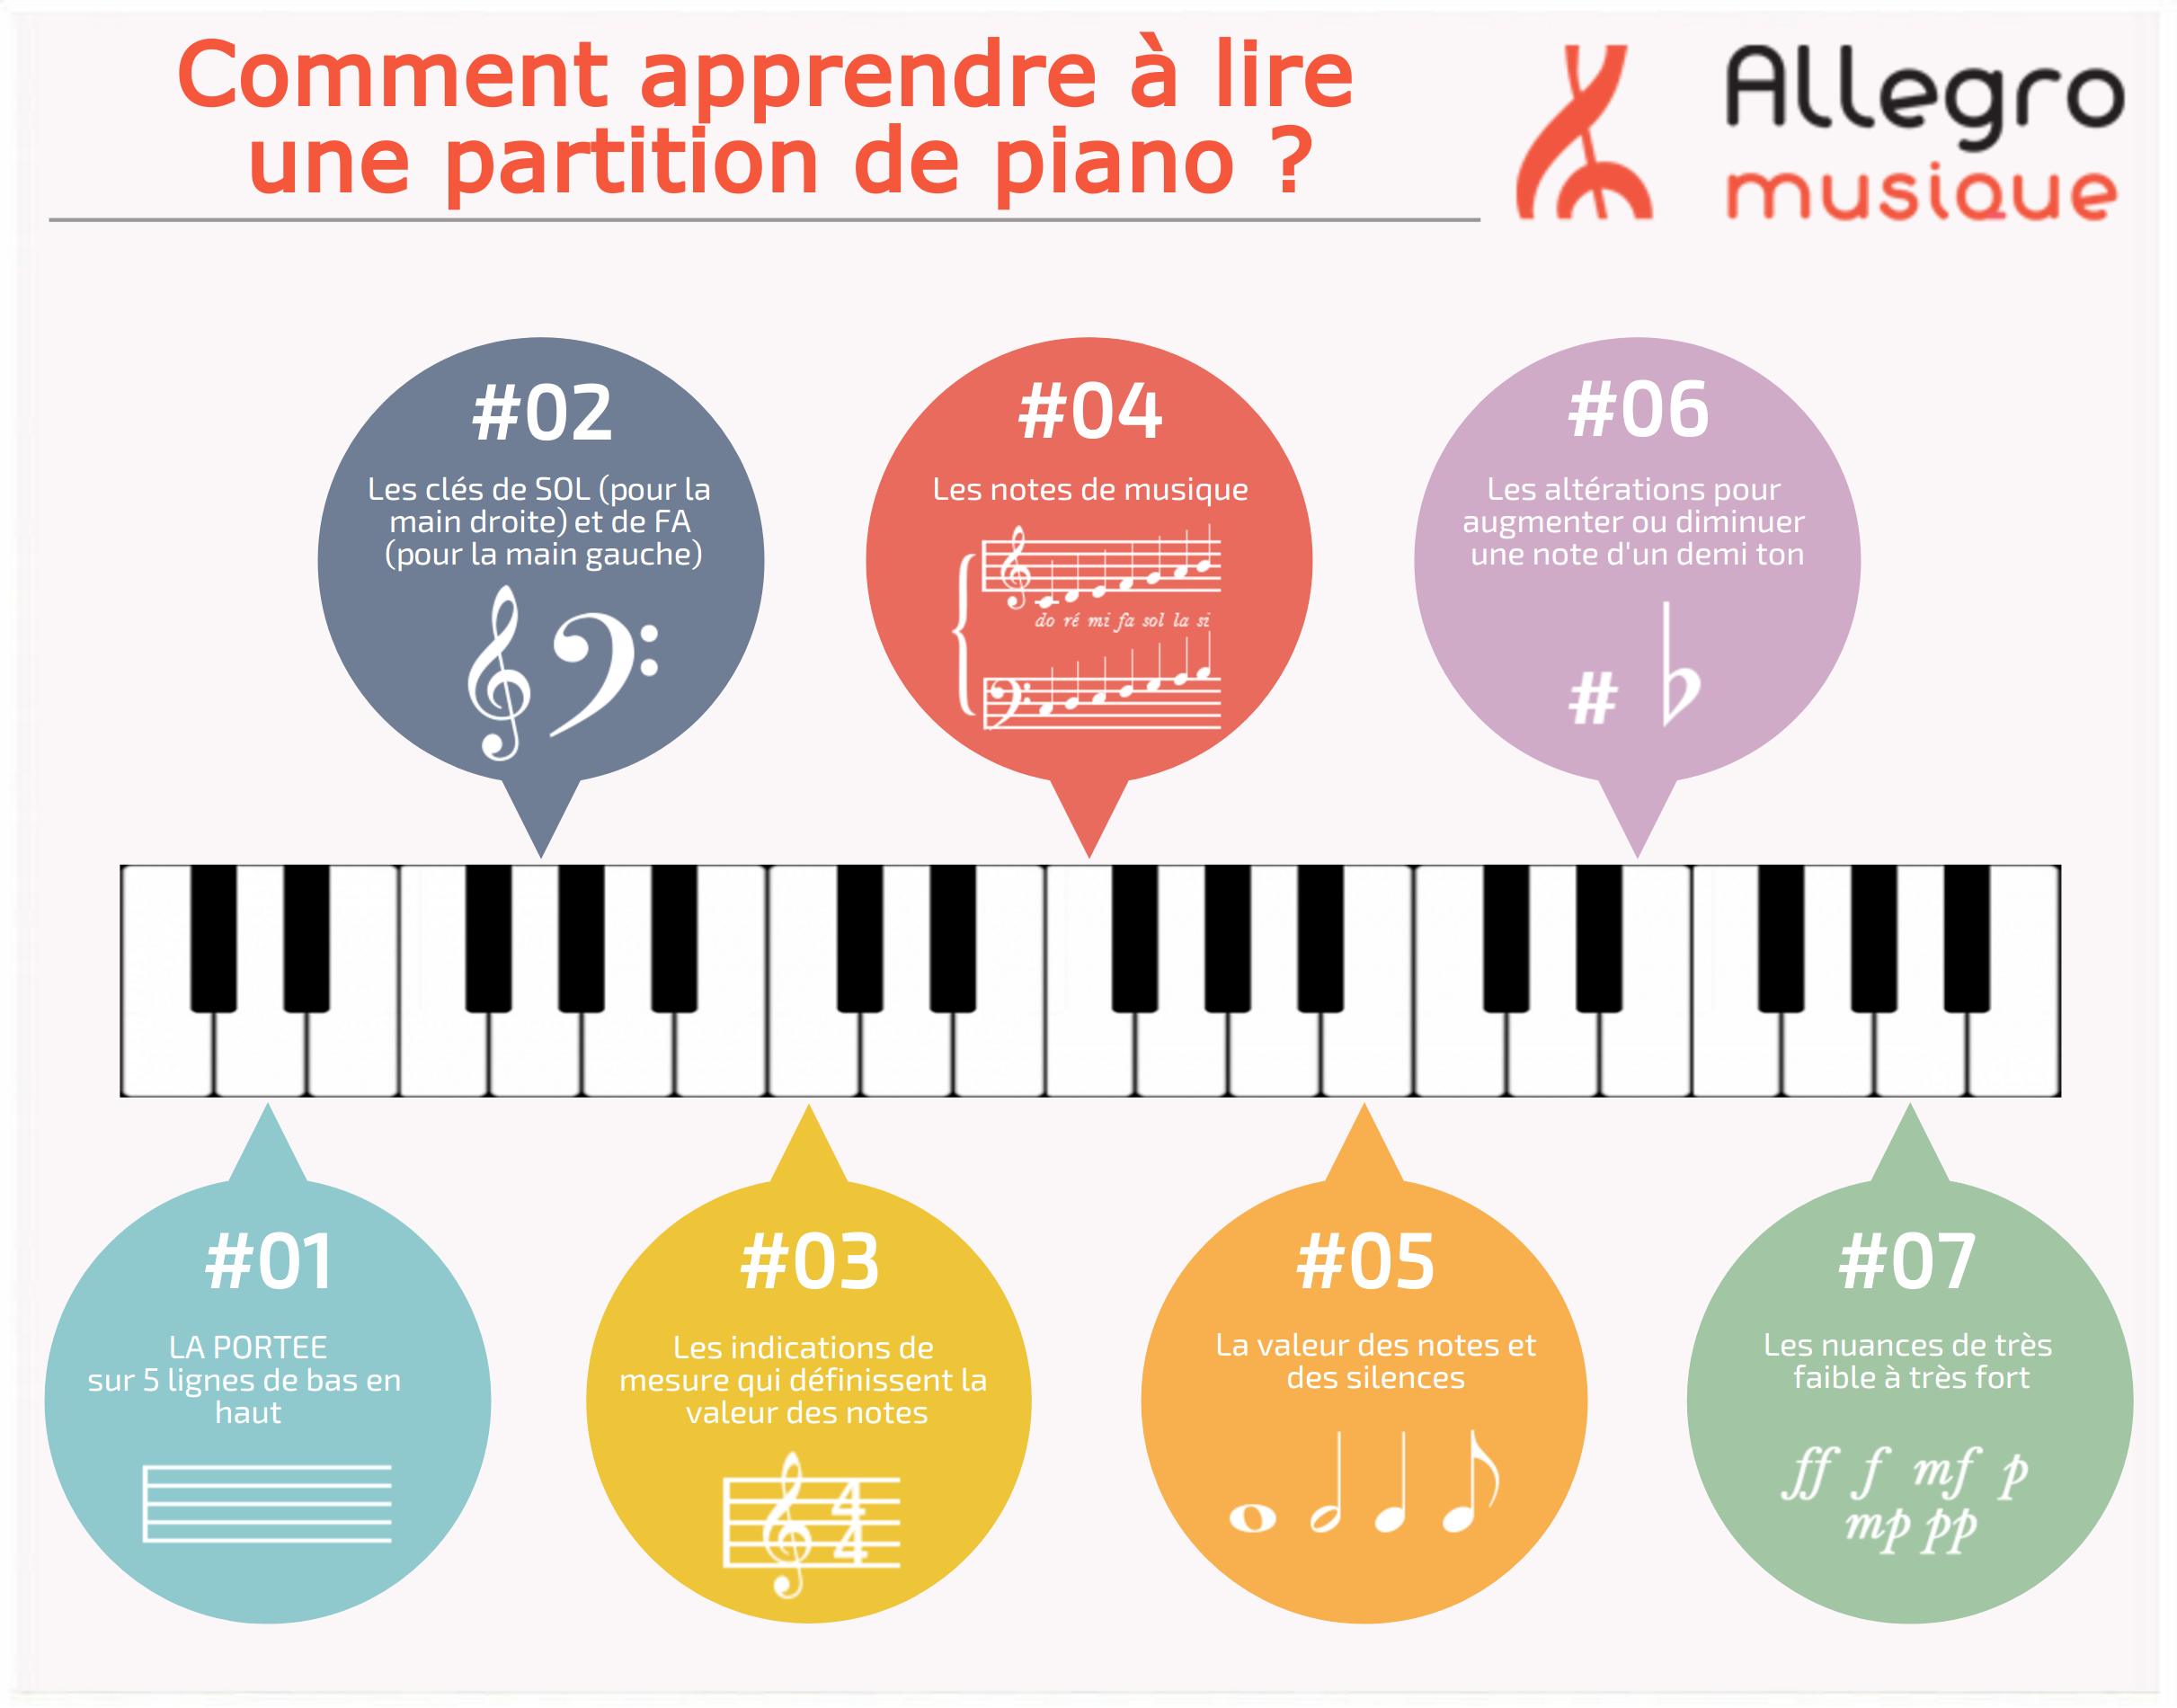 Allegro-lire-partition-piano.png